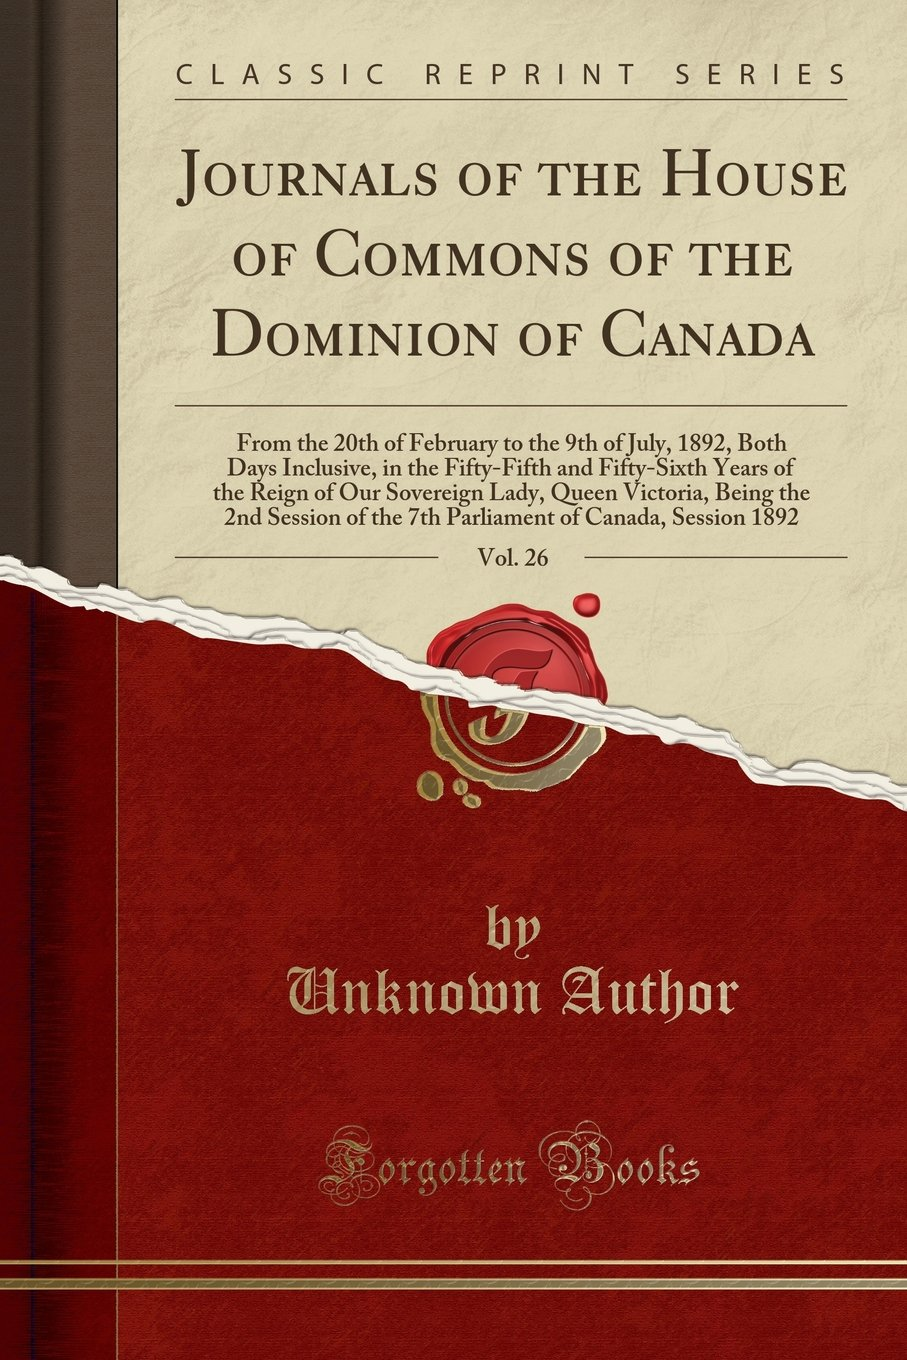 Download Journals of the House of Commons of the Dominion of Canada, Vol. 26: From the 20th of February to the 9th of July, 1892, Both Days Inclusive, in the ... Lady, Queen Victoria, Being the 2nd Sessio pdf epub